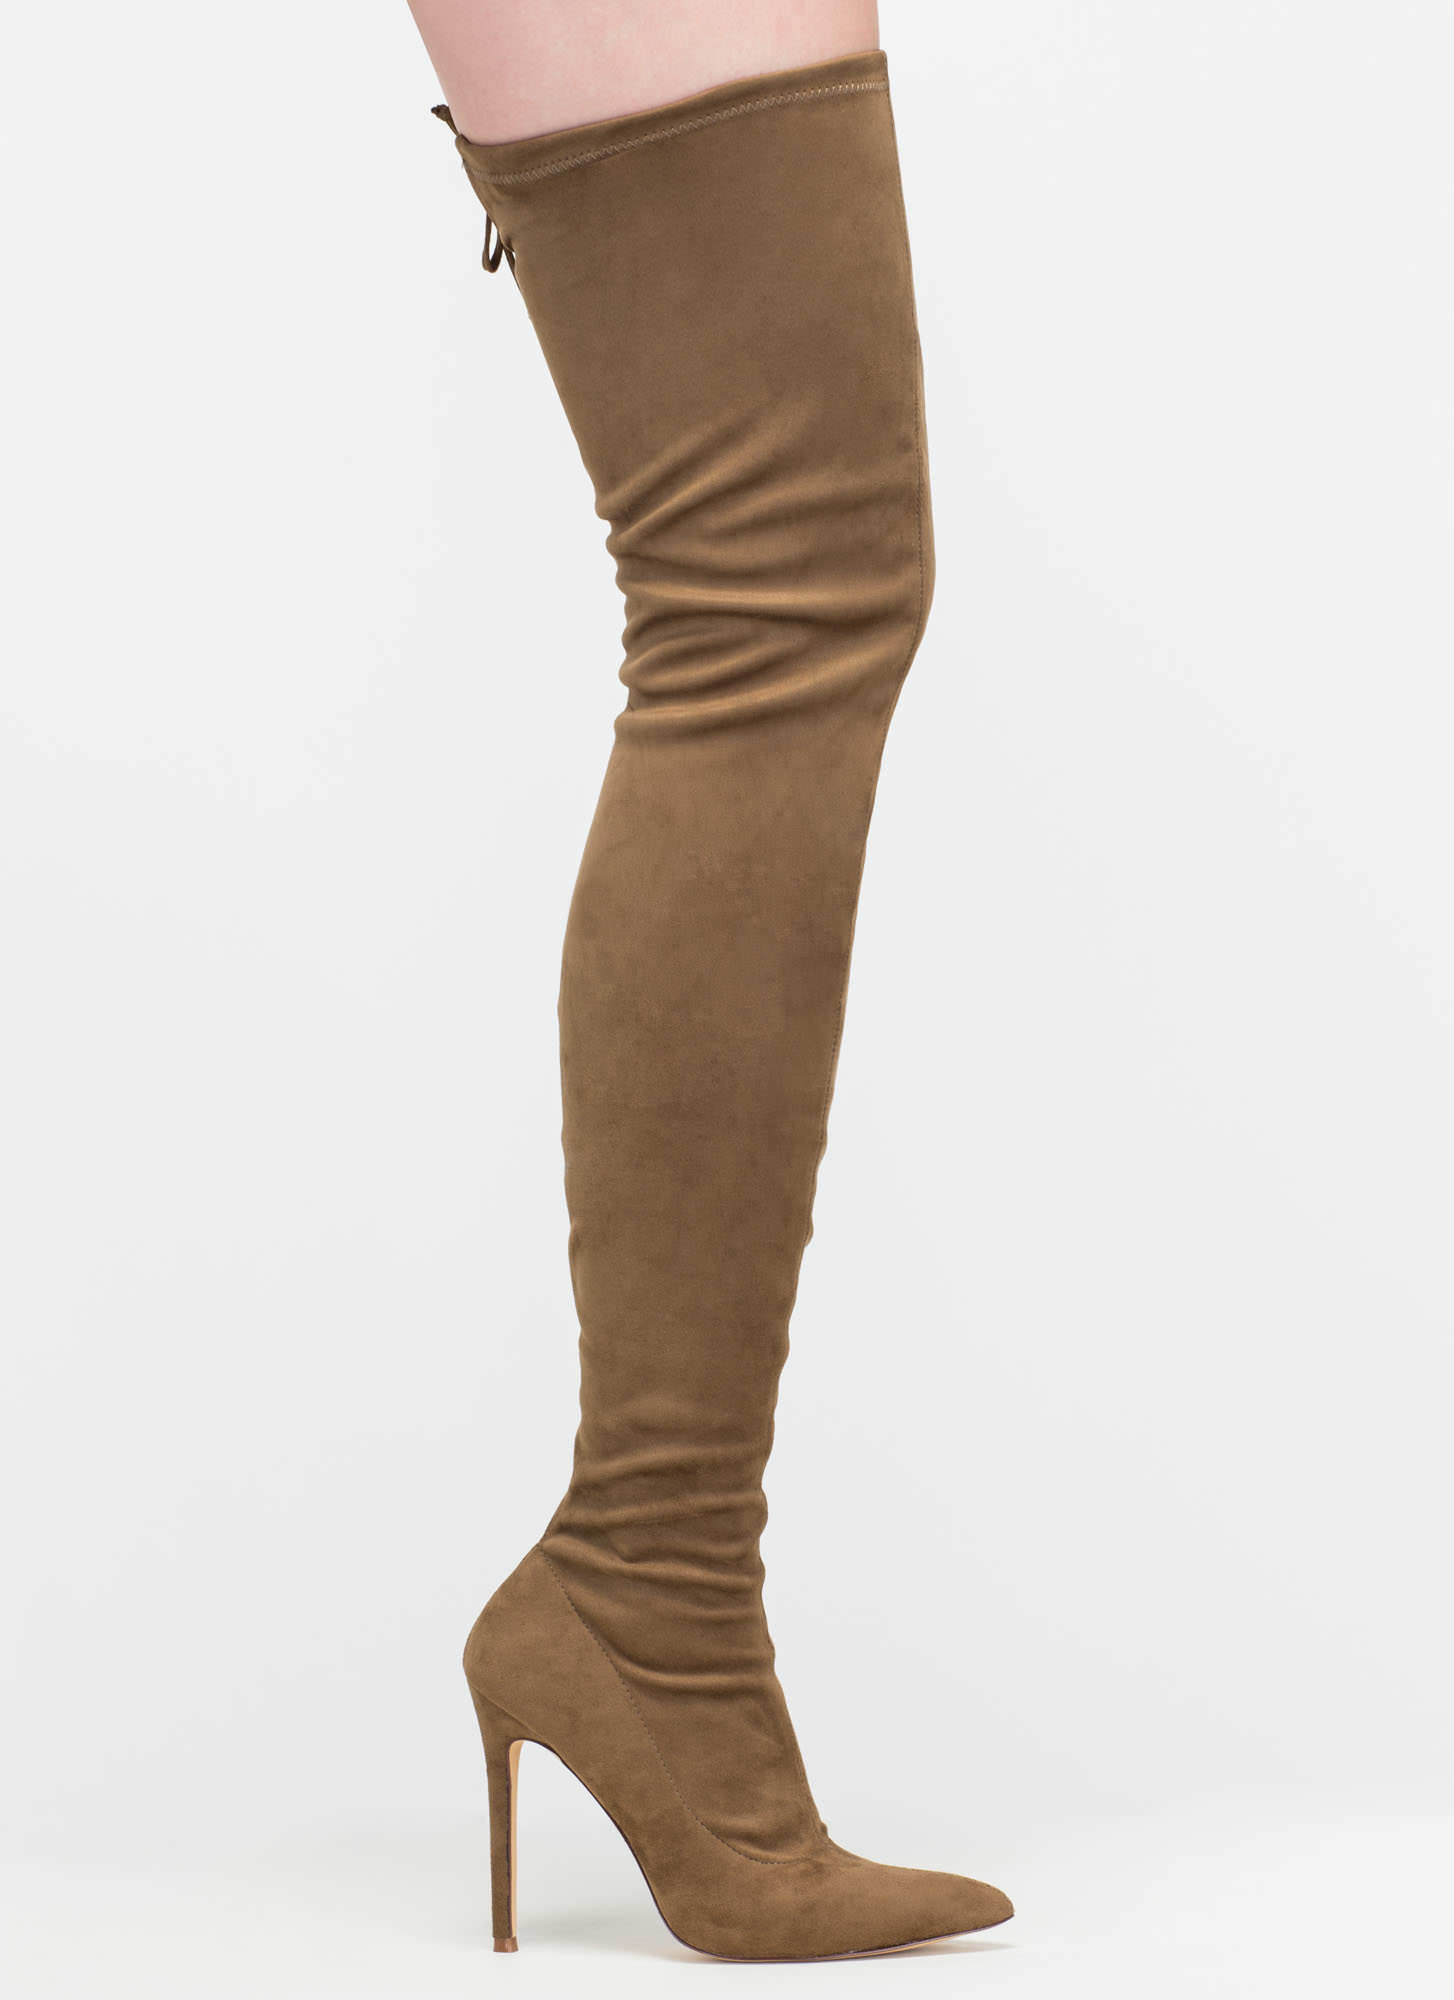 Crush Hard Faux Suede Thigh-High Boots OLIVE